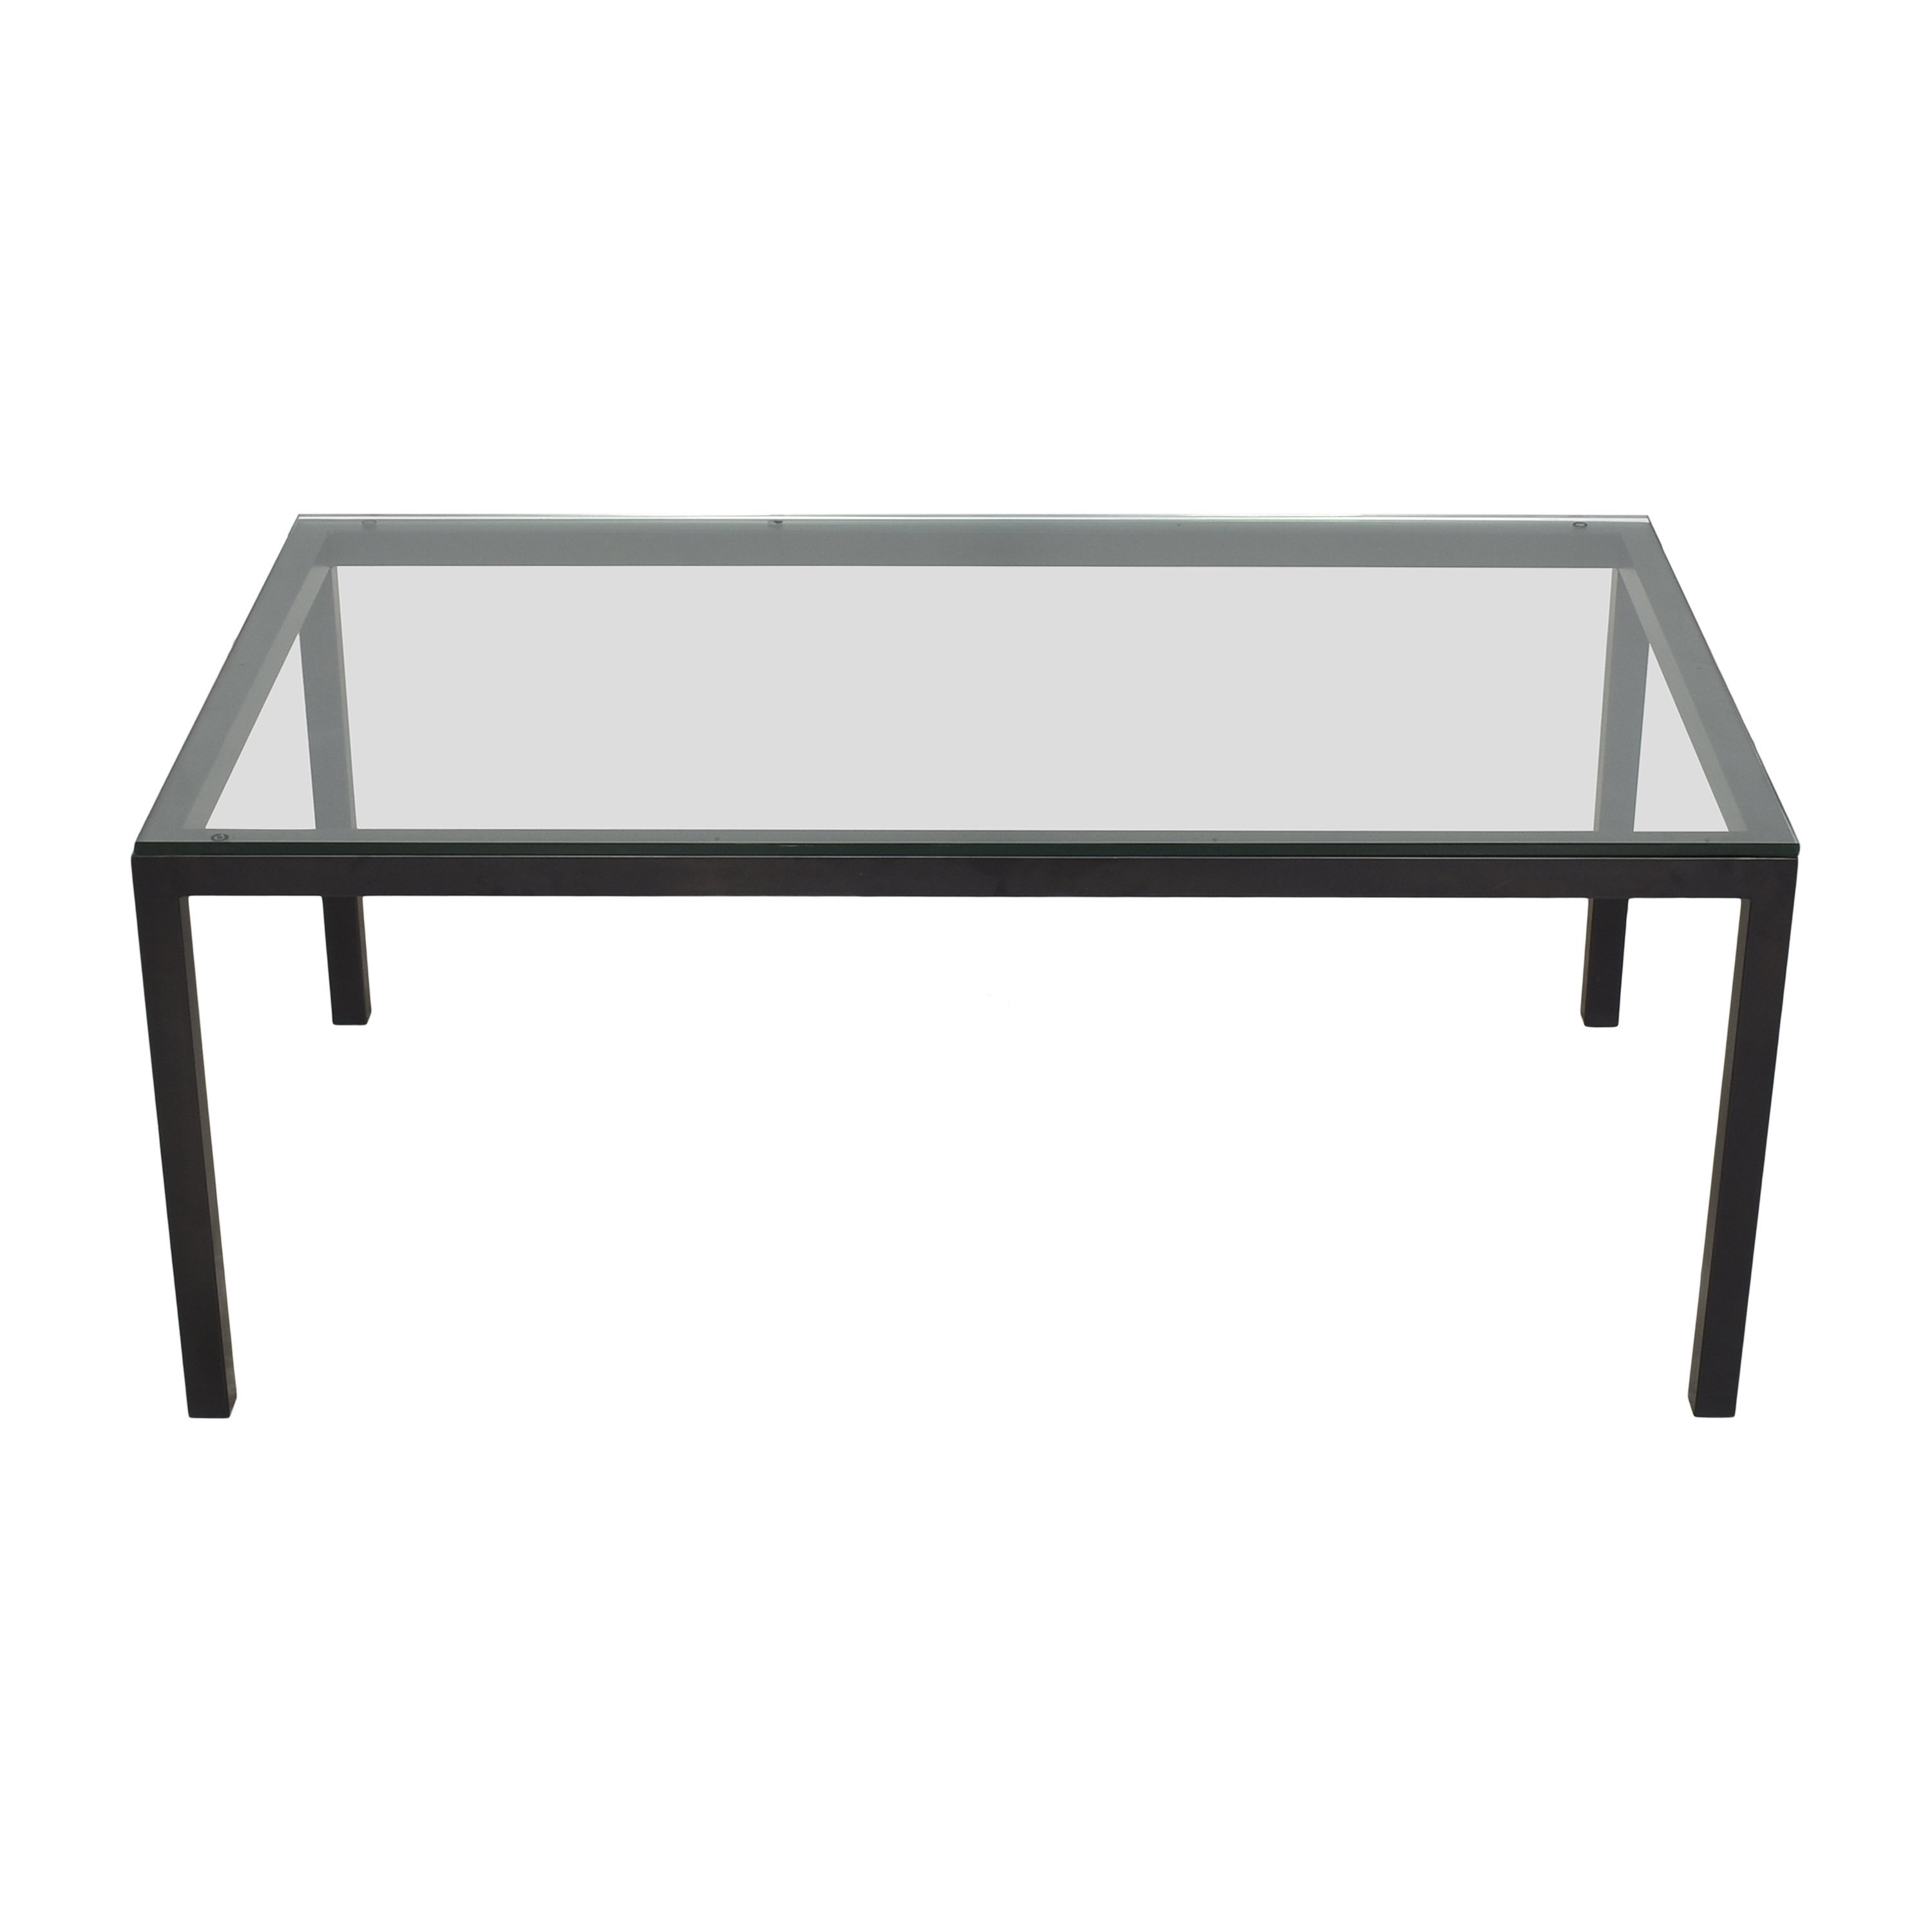 Crate & Barrel Crate & Barrel Parsons Dining Table coupon